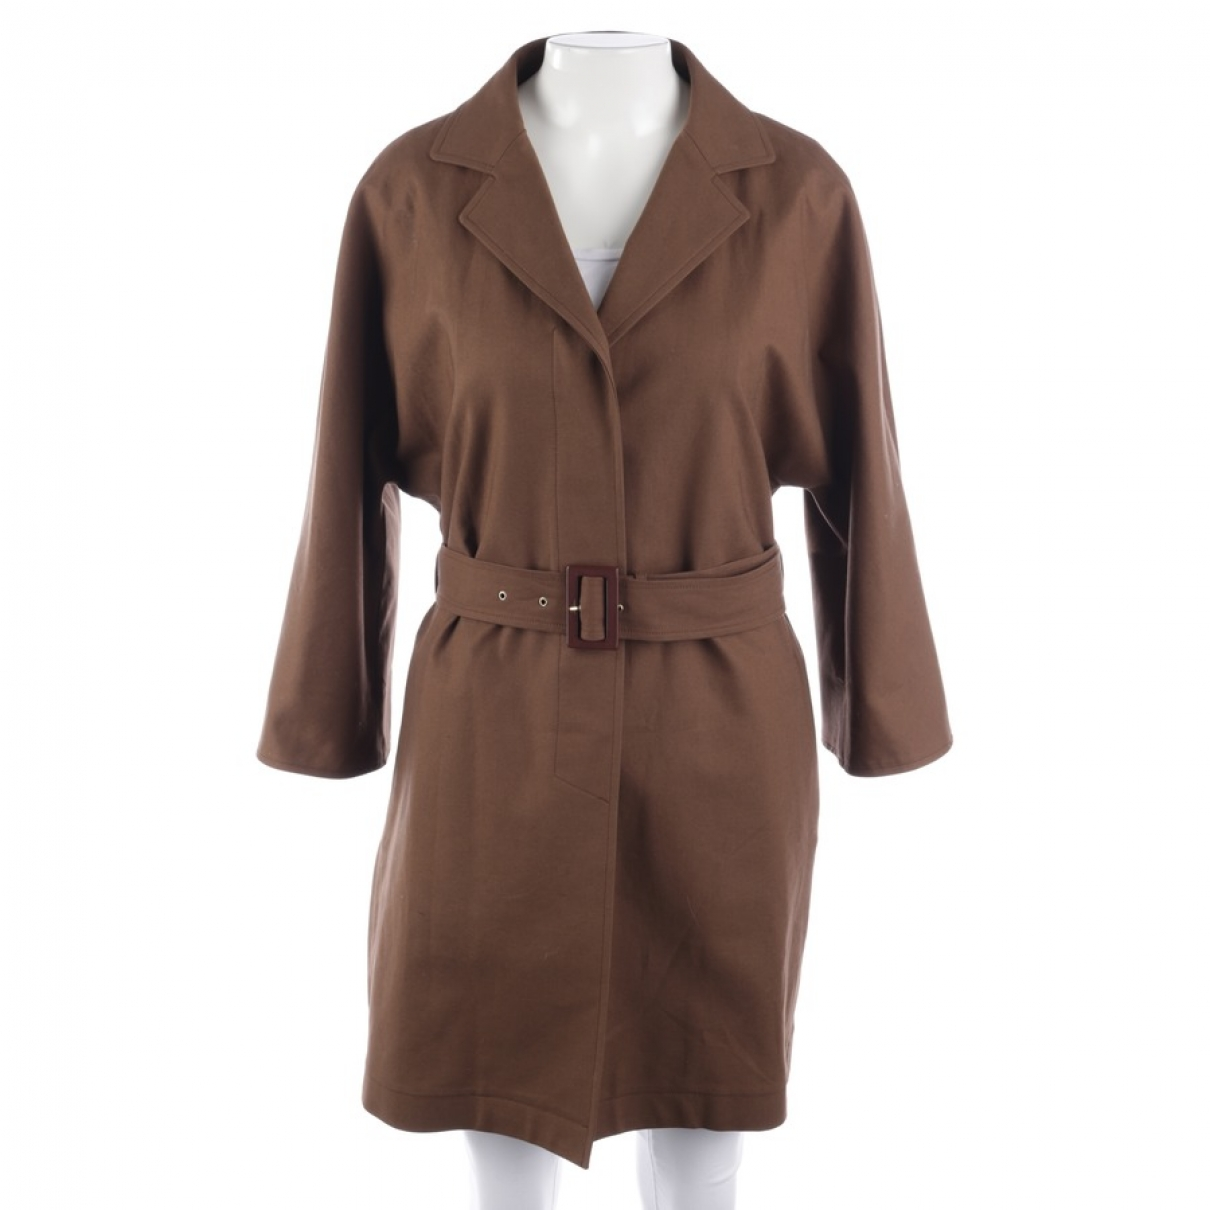 Herno \N Brown Cotton jacket for Women 36 FR